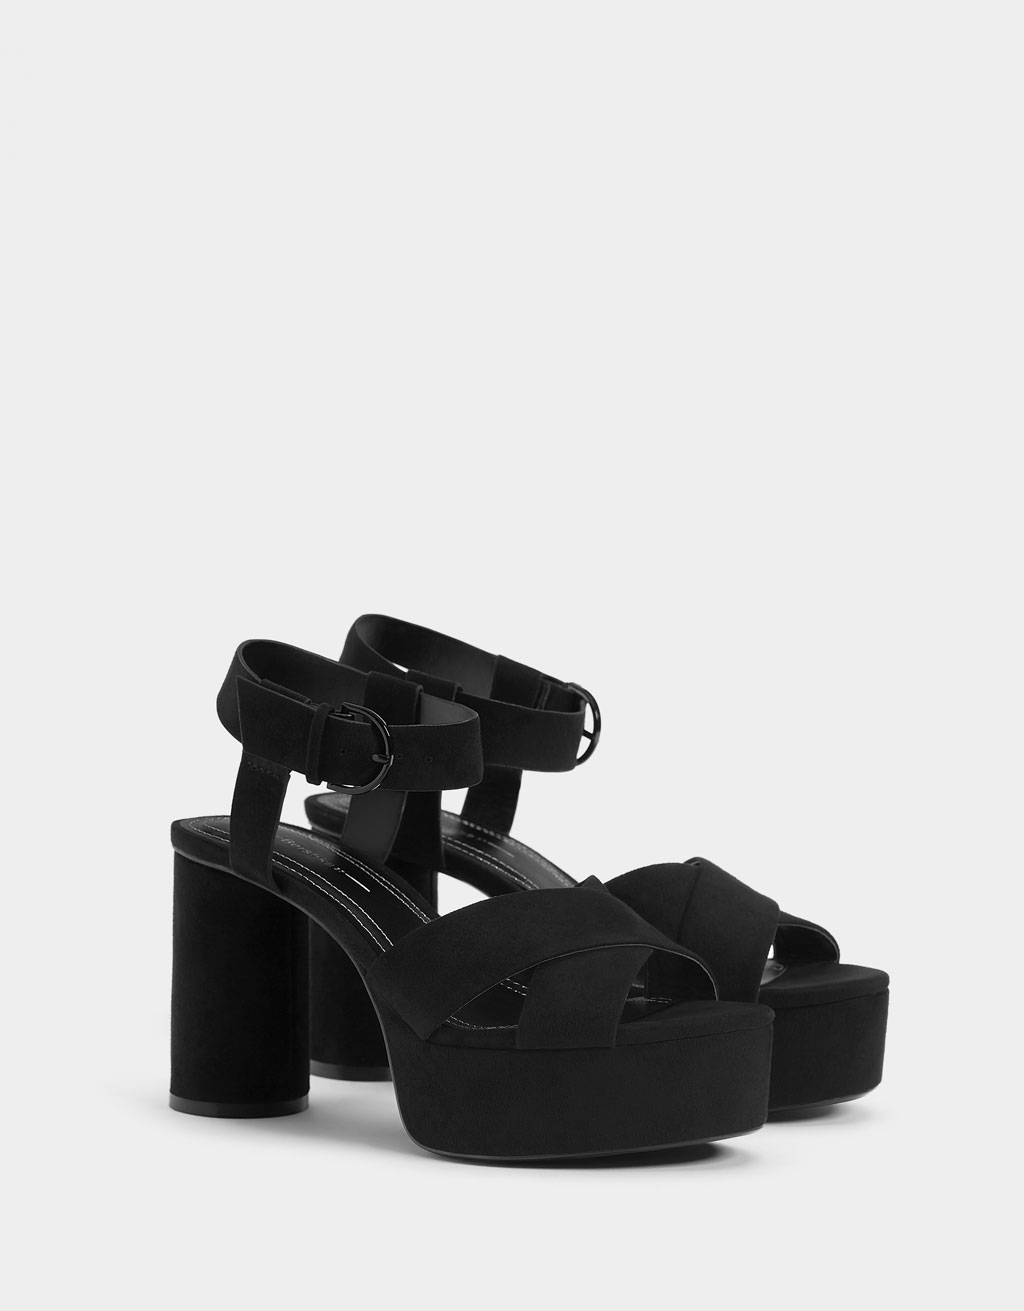 6d9c4edba03 High-heel platform sandals - Shoes - Bershka Macedonia